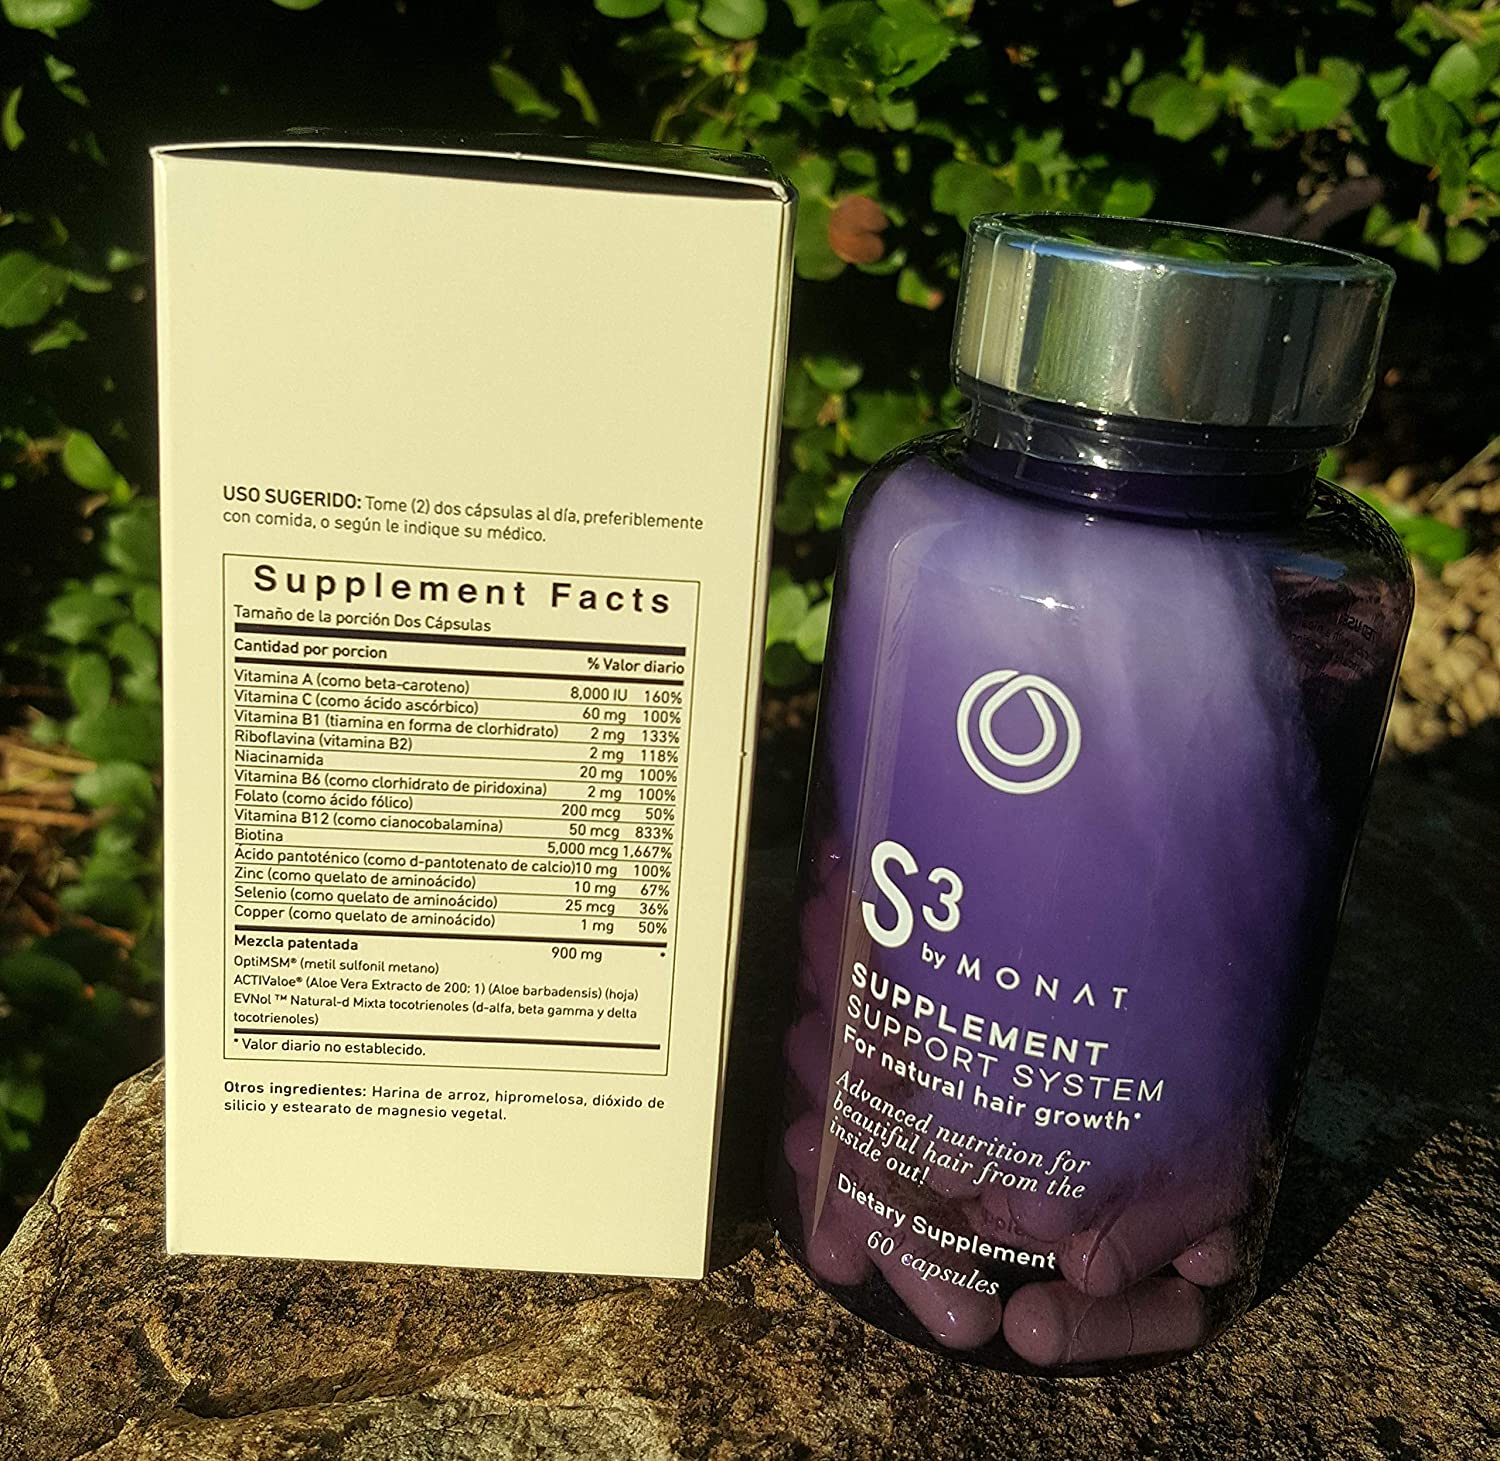 Amazon.com: Monat Hair S3 Supplement Support System for Natural Hair Growth (60capsules): Health & Personal Care